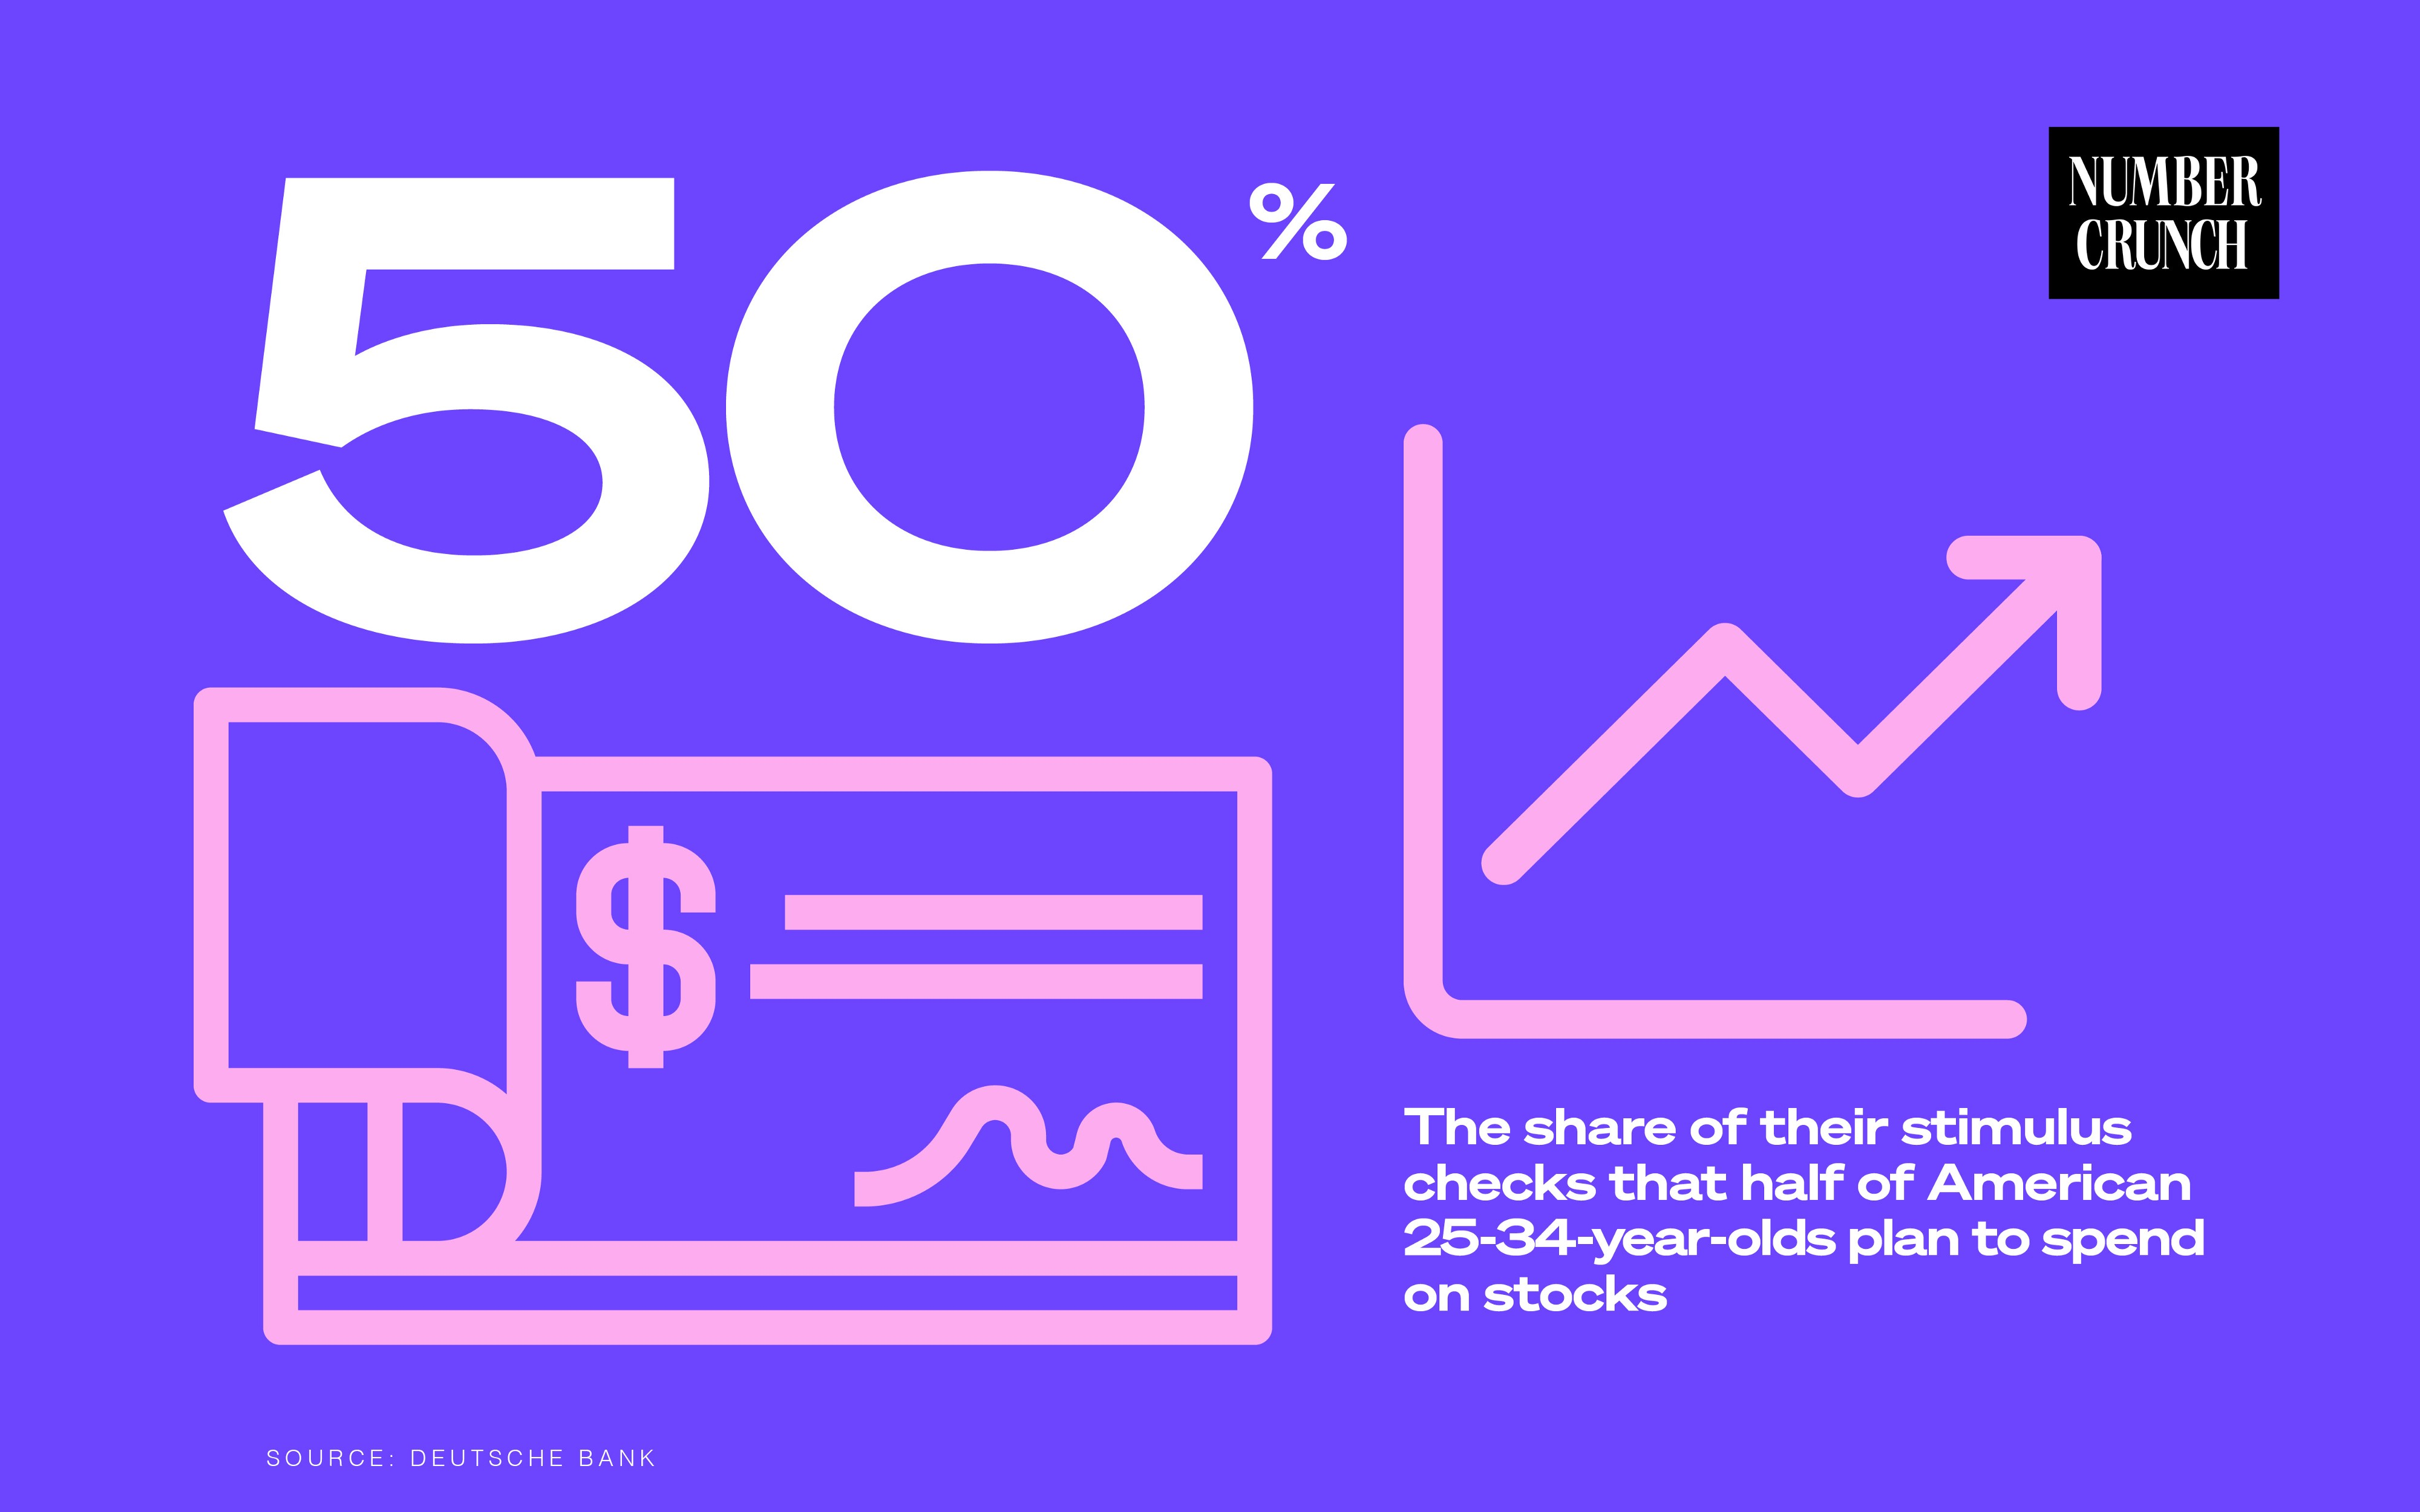 "An illustration of the Number Crunch logo next to the text ""50%: The share of their stimulus checks that half of American 25–34-year-olds plan to spend on stocks. Source: Deutsche Bank"" with an illustration of a check and a positive trending graph below it."